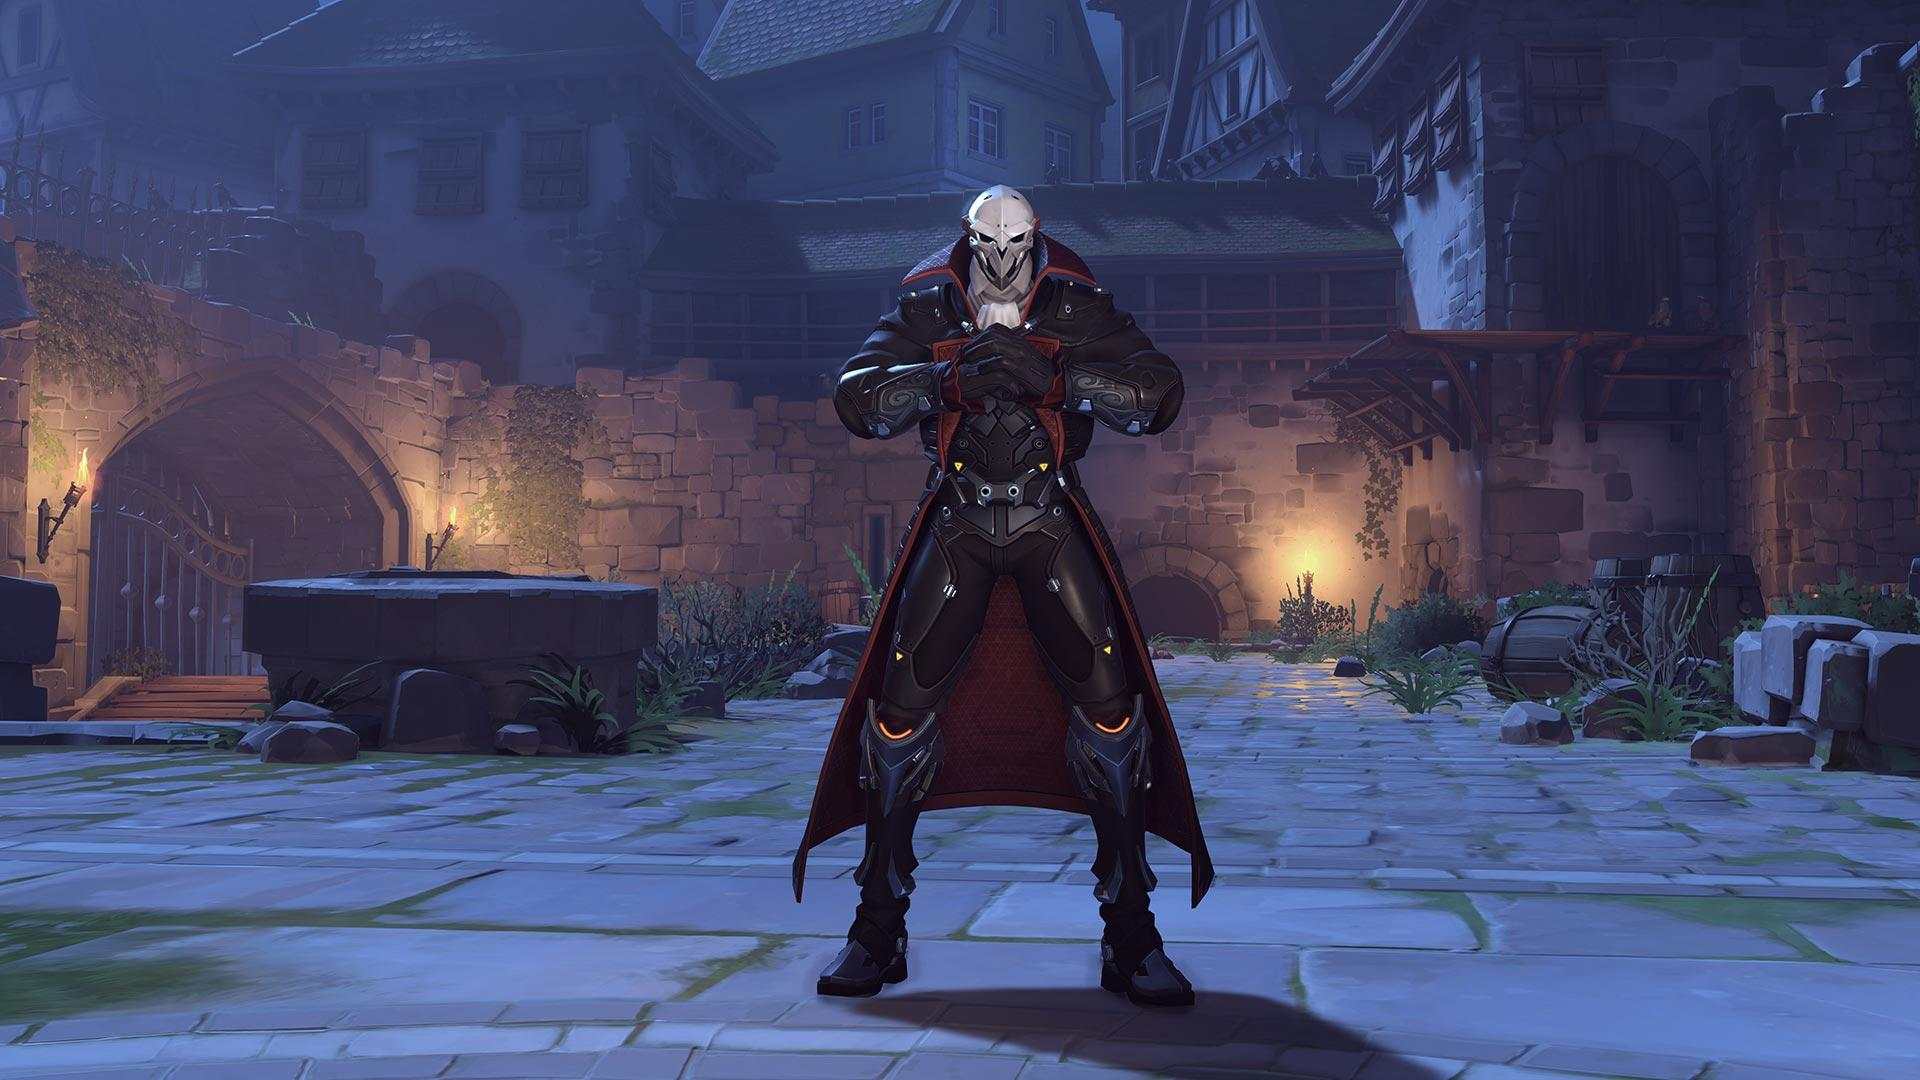 overwatch halloween terror 2017 new skins 7 - Скины на хэллоуин Overwatch 2017cd